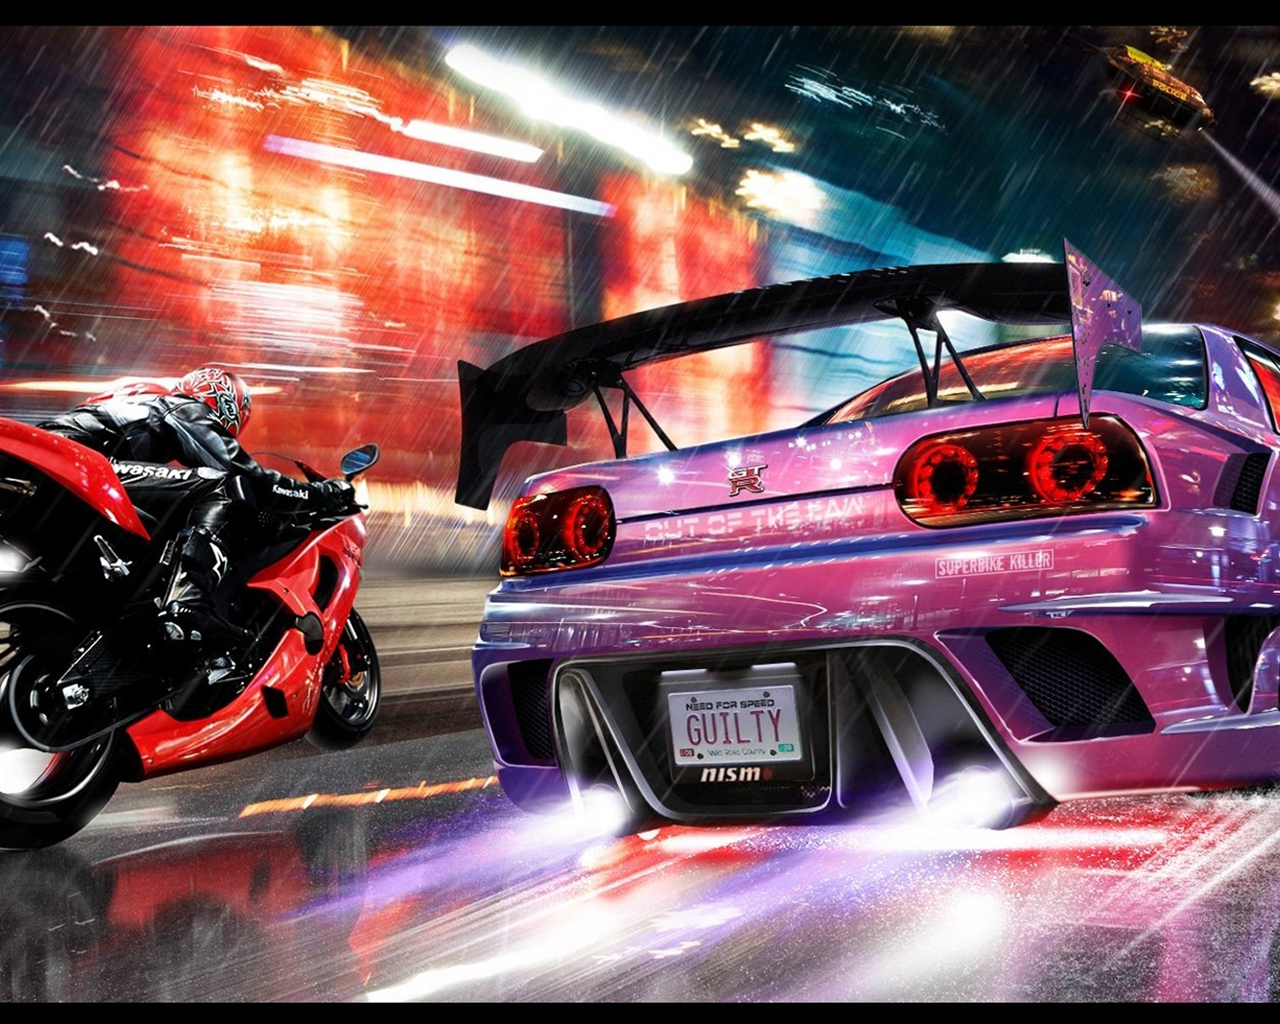 Need for Speed Giulty